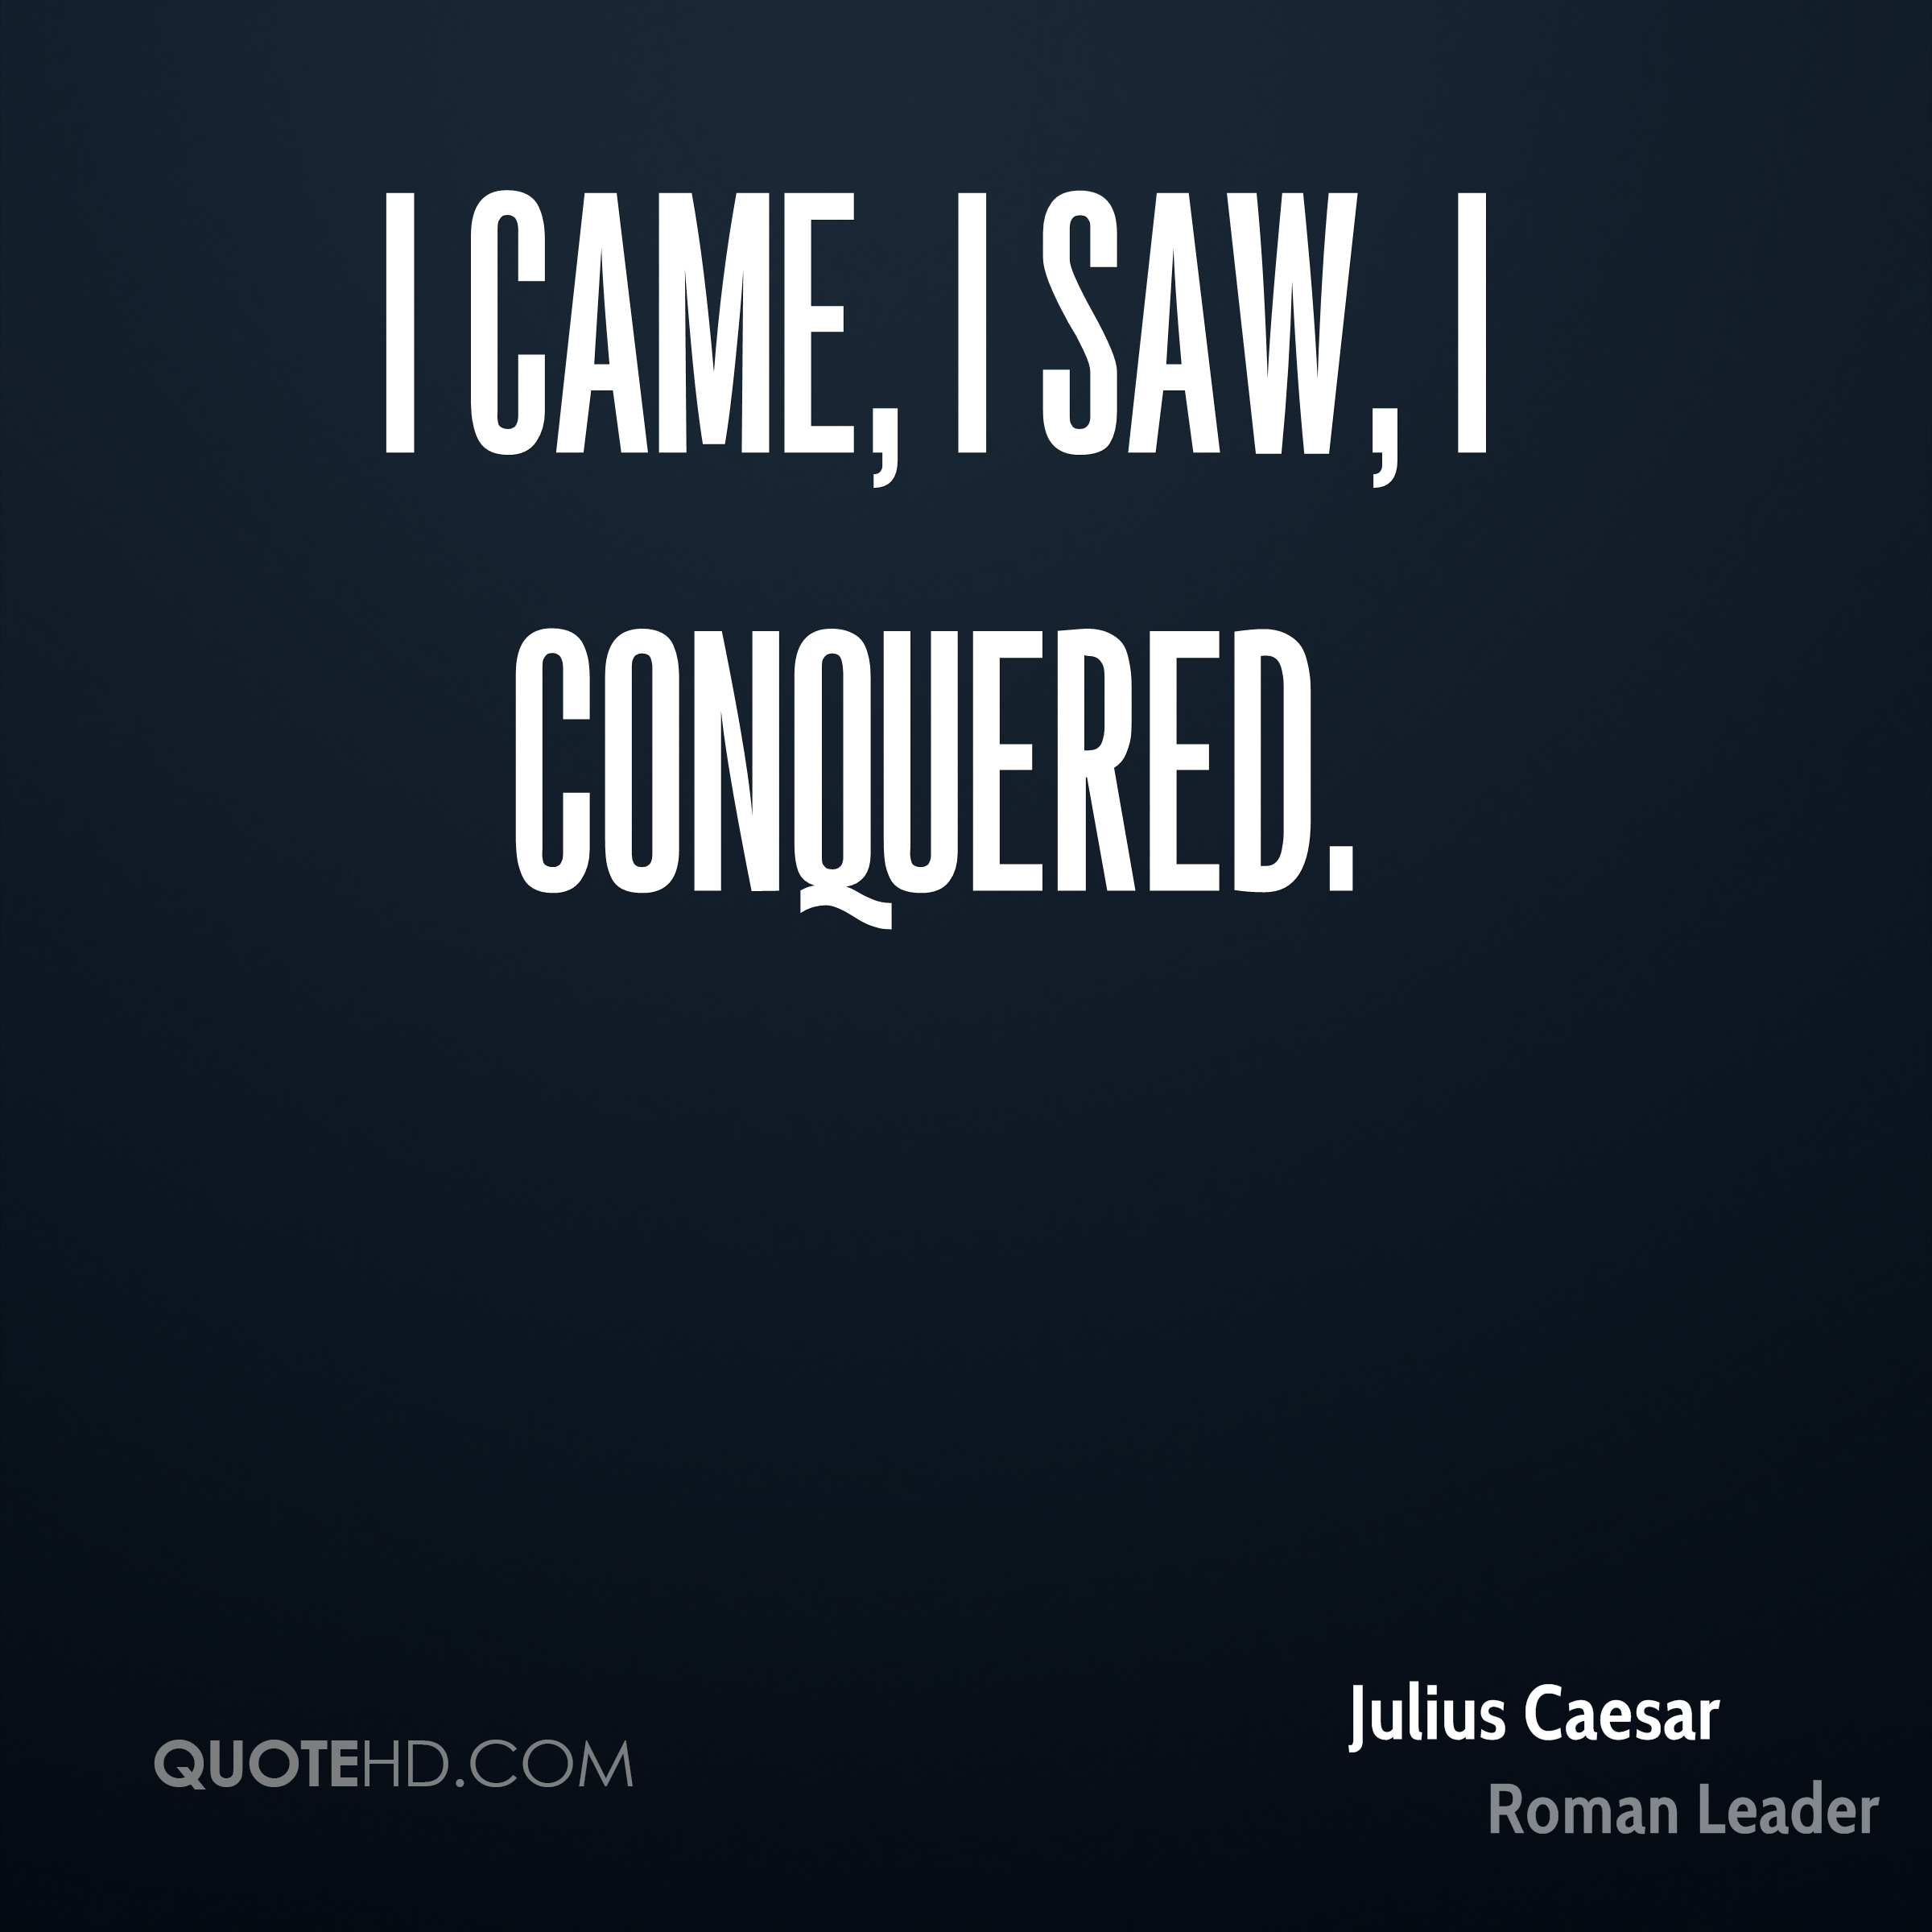 julius caesar leadership Rome's leader, julius caesar, is a force unlike any the city has seen magnetic,  populist, irreverent, he seems bent on absolute power a small band of patriots,.